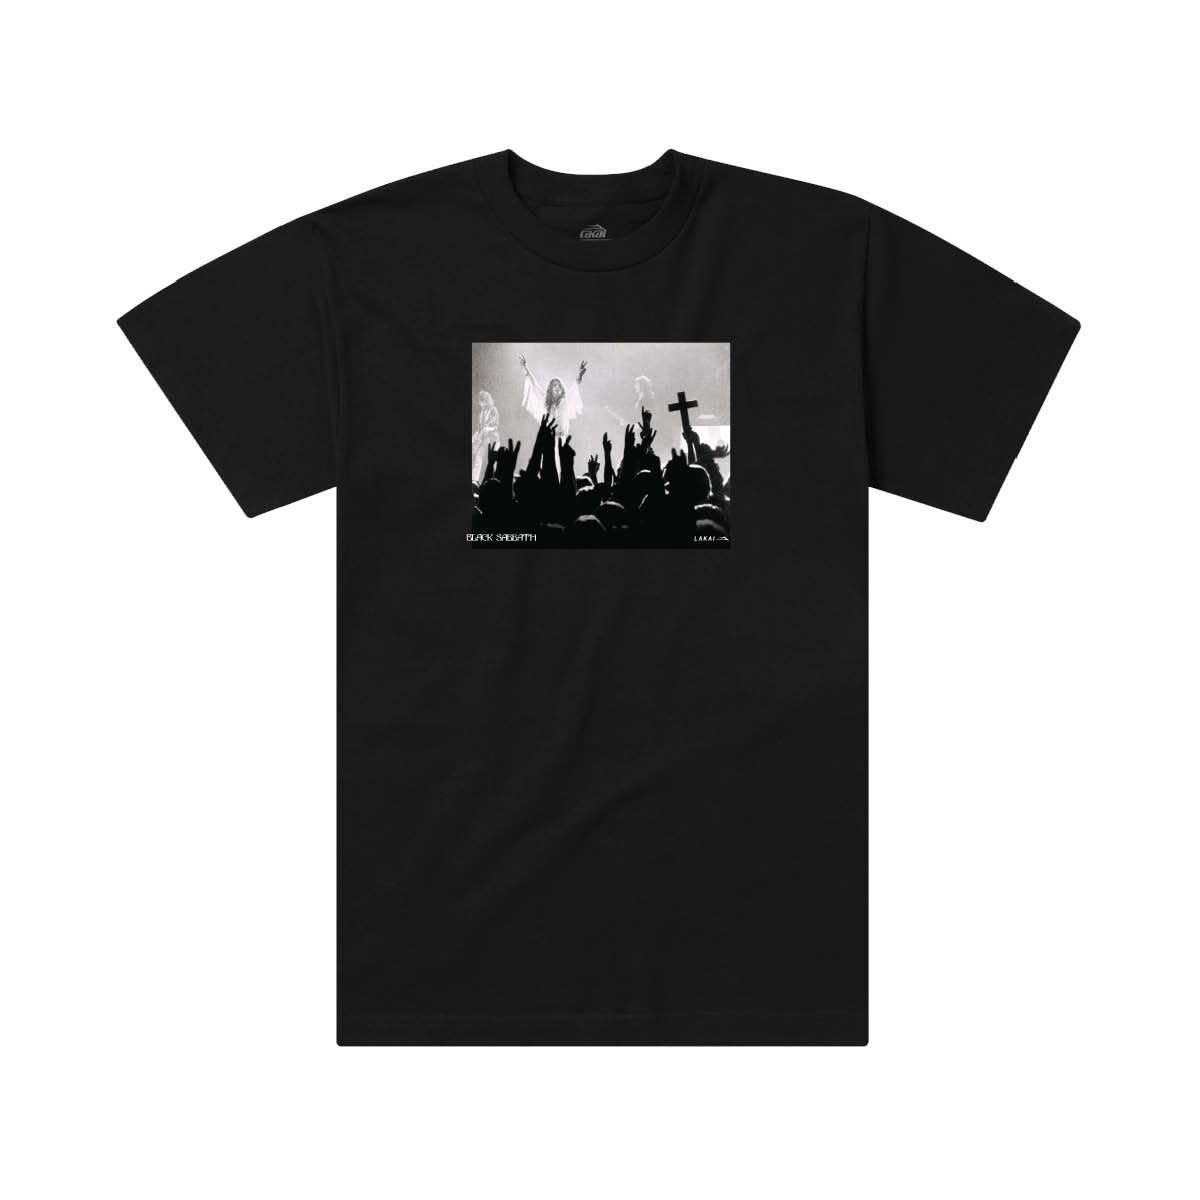 Lakai Lakai - BLACK SABBATH S/S Tour Photo Black